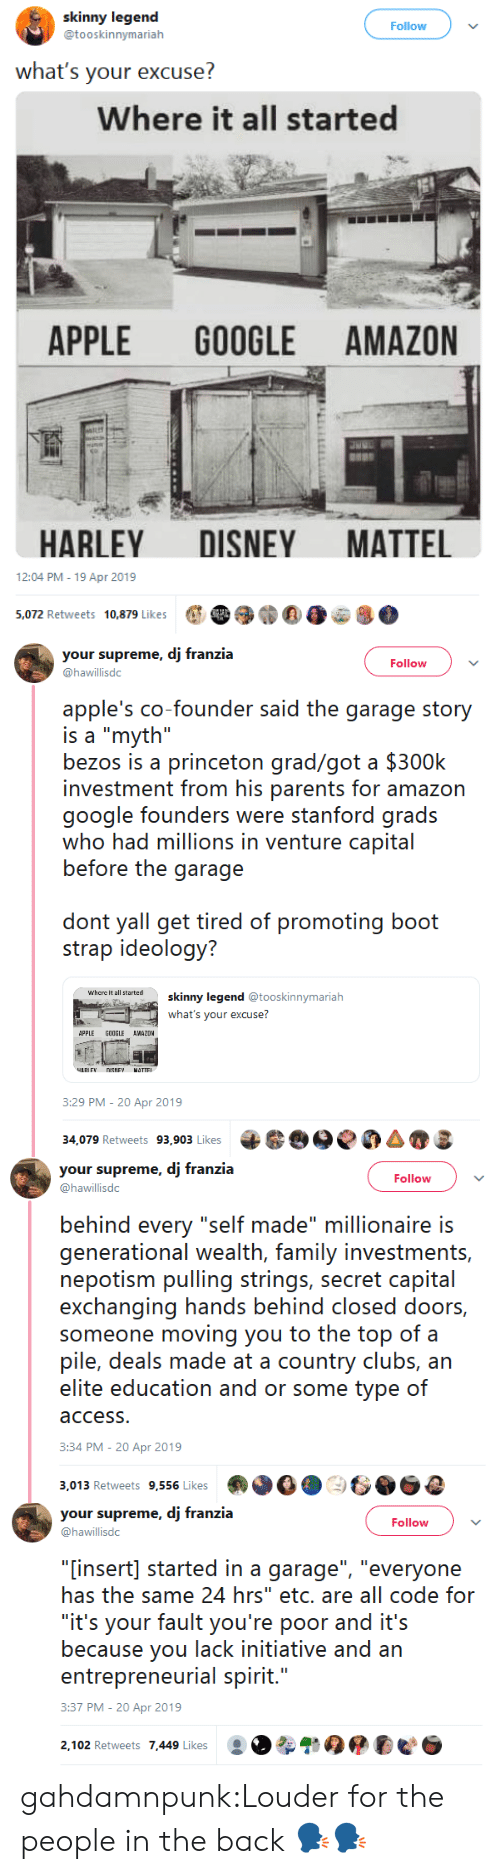 """Amazon, Apple, and Disney: skinny legend  @tooskinnymarialh  Follow  what's your excuse?  Where it all started  APPLE GOOGLE AMAZON  HARLEY DISNEY MATTEL  12:04 PM-19 Apr 2019  e 39)""""E0e8.  5,072 Retweets  10,879 Likes   your supreme, dj franzia  @hawillisdc  Follow  apple's co-founder said the garage story  is a """"myth""""  bezos is a princeton grad/got a $300k  investment from his parents for amazon  google founders wre staniord grads  who had millions in venture capital  before the garage  don yal gei üred of promoting booi  strap ideology?  where it all tartedskinny legend@  ooskinnymariah  what's your excuse?  APPLE GOOGLE AWAZOM  :29 PM-20 Apr 2019  34,079 Retweets 93,903 Likes 6e0AS   your supreme, dj franzia  @hawillisdc  Follow  behind every """"self made"""" millionaire is  generational wealith, farmily ivestrnnis,  nepotism pulling strings, secret capital  exchanging hands behind closed doors,  someone moving you to the top of a  pile, deals made at a country clubs, arn  access  3:34 PM-20 Apr 2019  3,013 Retweets 9,556 Likes   your supreme, dj franzia  @hawillisdc  Follow  """"[insert] started in a garage"""", """"everyone  has the same 24 hrs"""" etc. are all code for  """"it's your fault you're poor and it's  because you lack initiative and an  entreprenerial spirit...  3:37 PM-20 Apr 2019  2,102 Retweets 7,449 Likes gahdamnpunk:Louder for the people in the back 🗣🗣"""